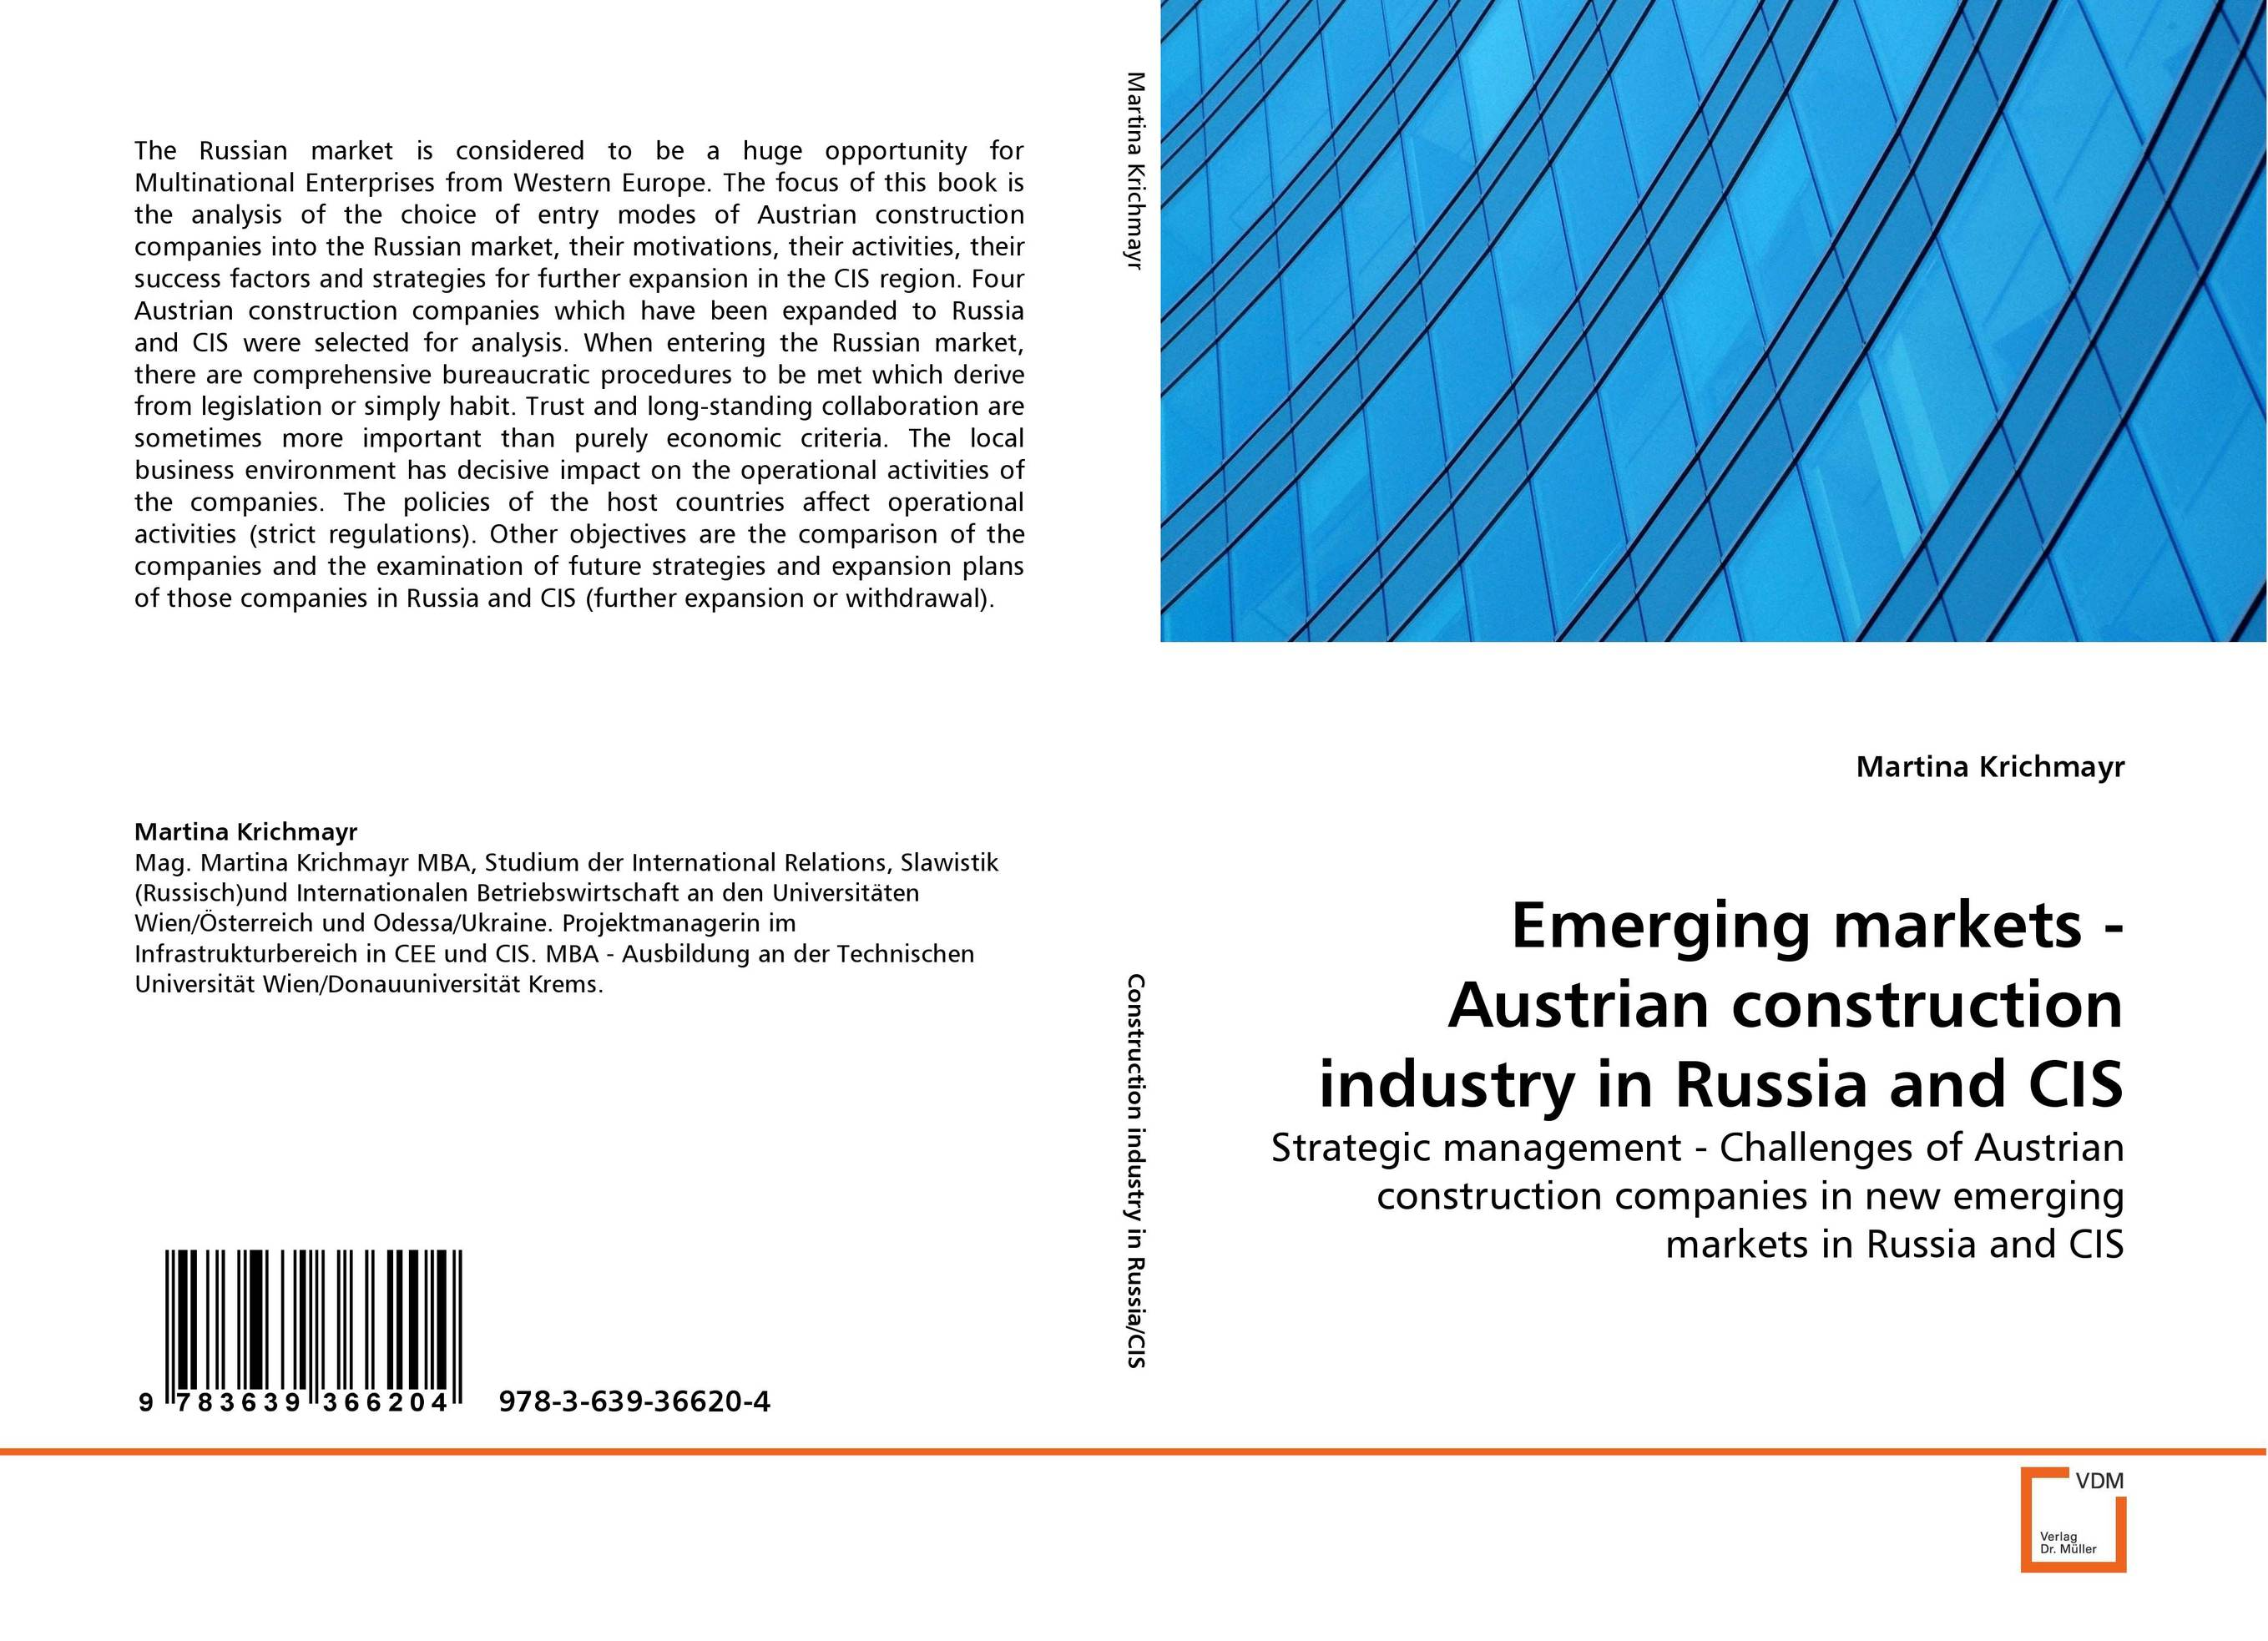 Emerging markets - Austrian construction industry in Russia and CIS